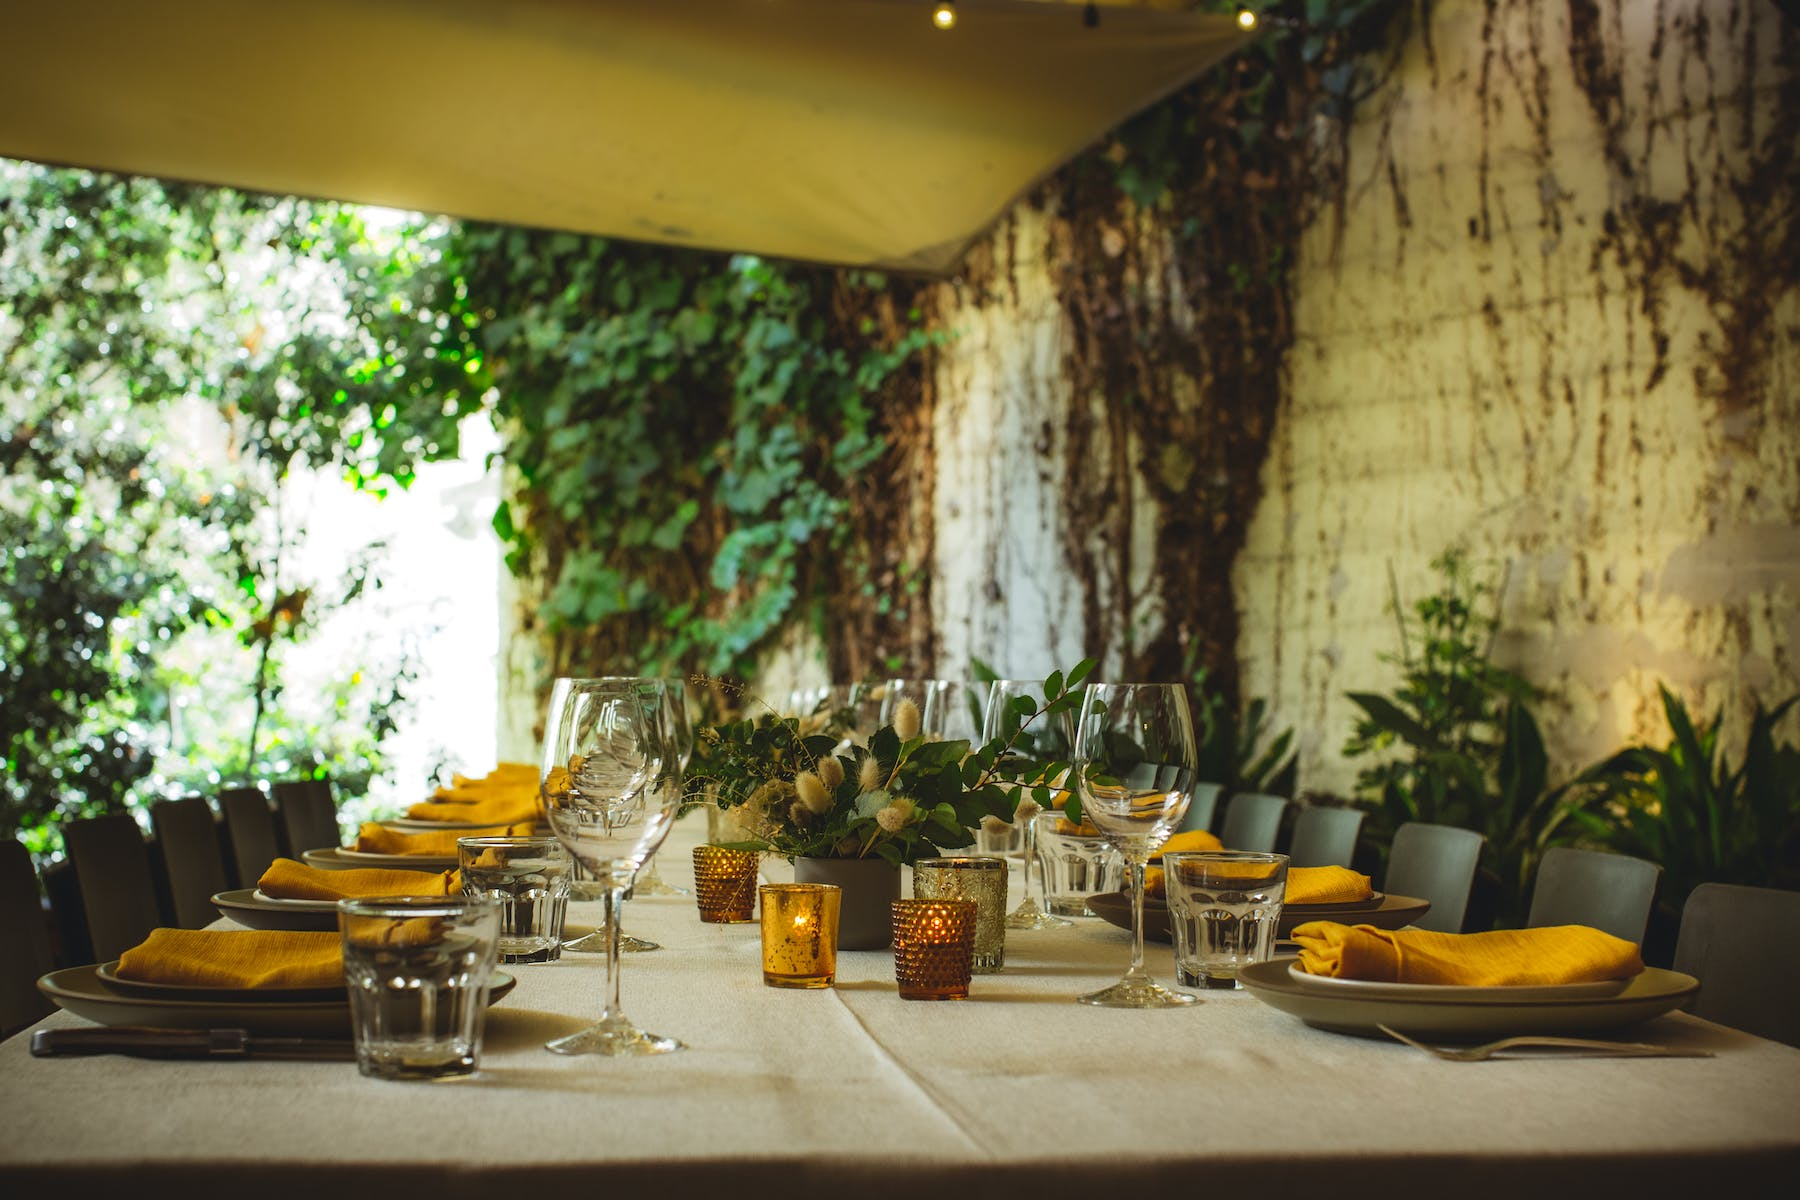 a large table decorated with yellow napkins over the plates